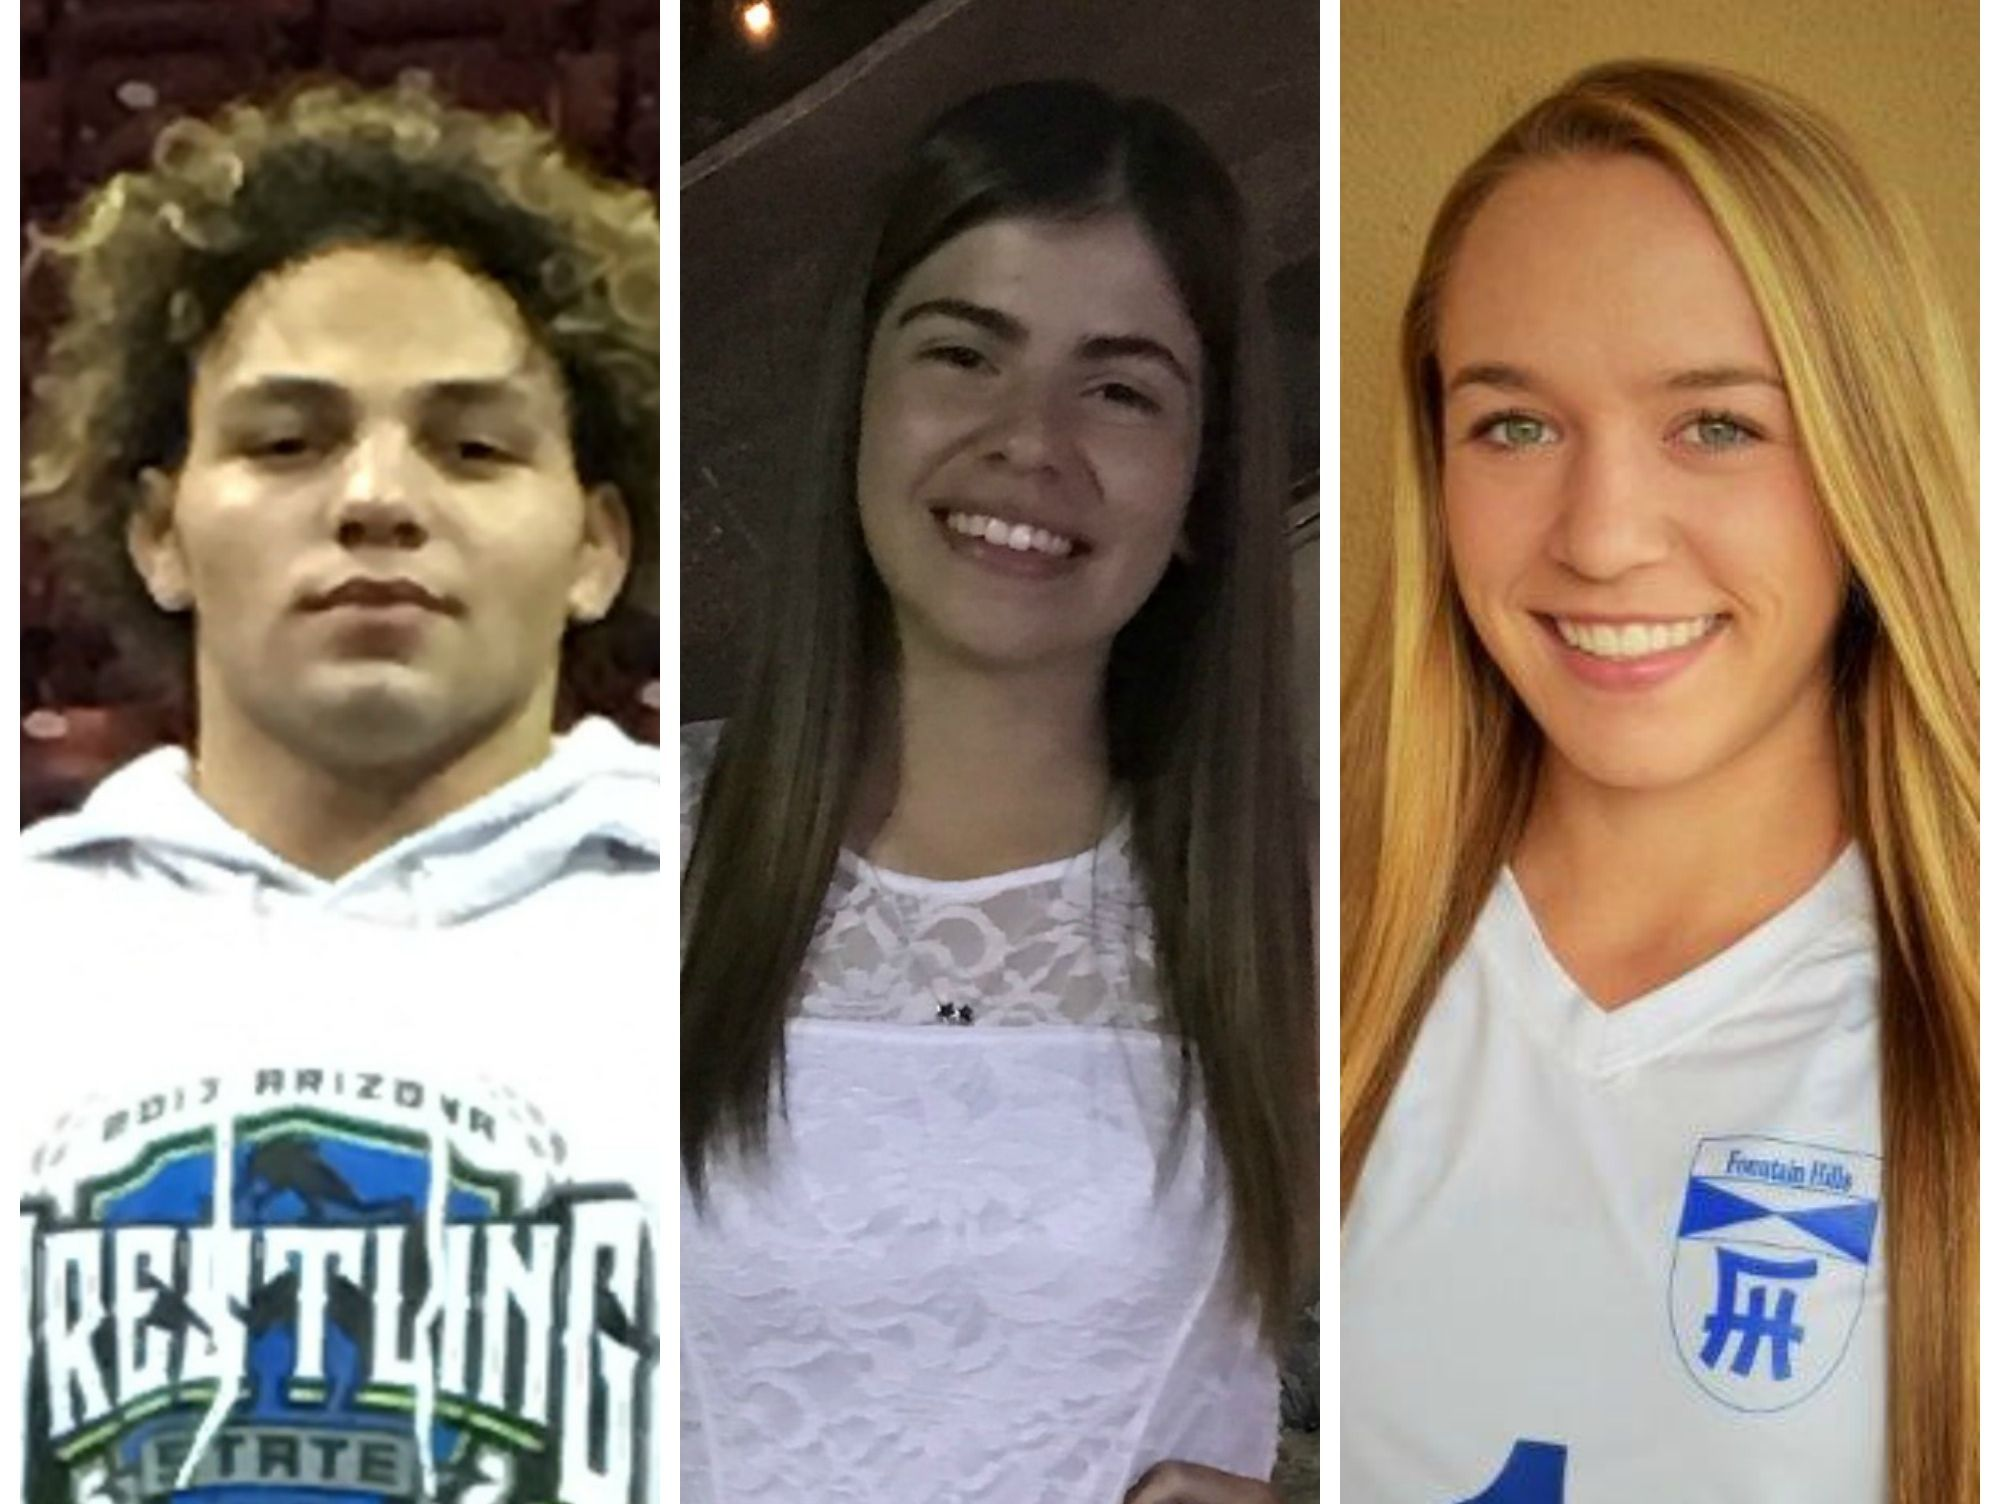 Congratulations to the azcentral.com Sports Awards Athletes of the Week, Trayvin Cato and Erika Yost, and the Academic All-Star of the Week, Vanessa Venjohn, for Feb. 16-23.